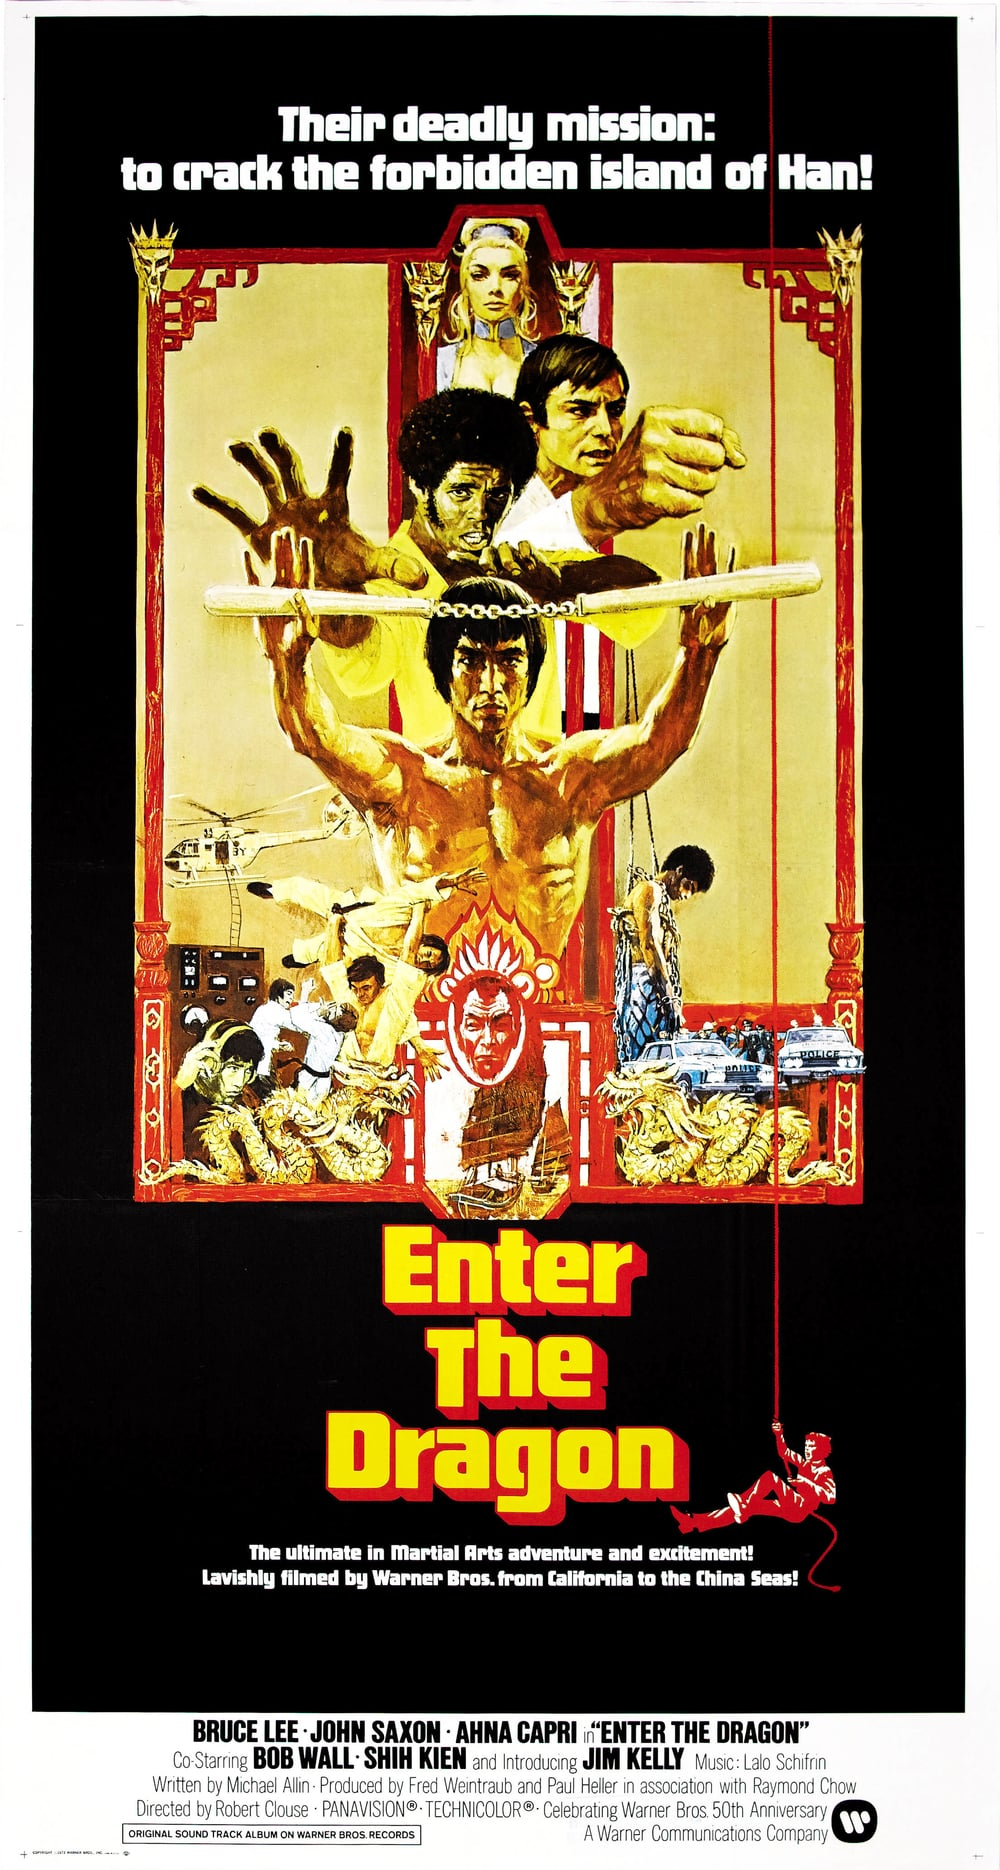 enter_the_dragon_poster_002.jpg